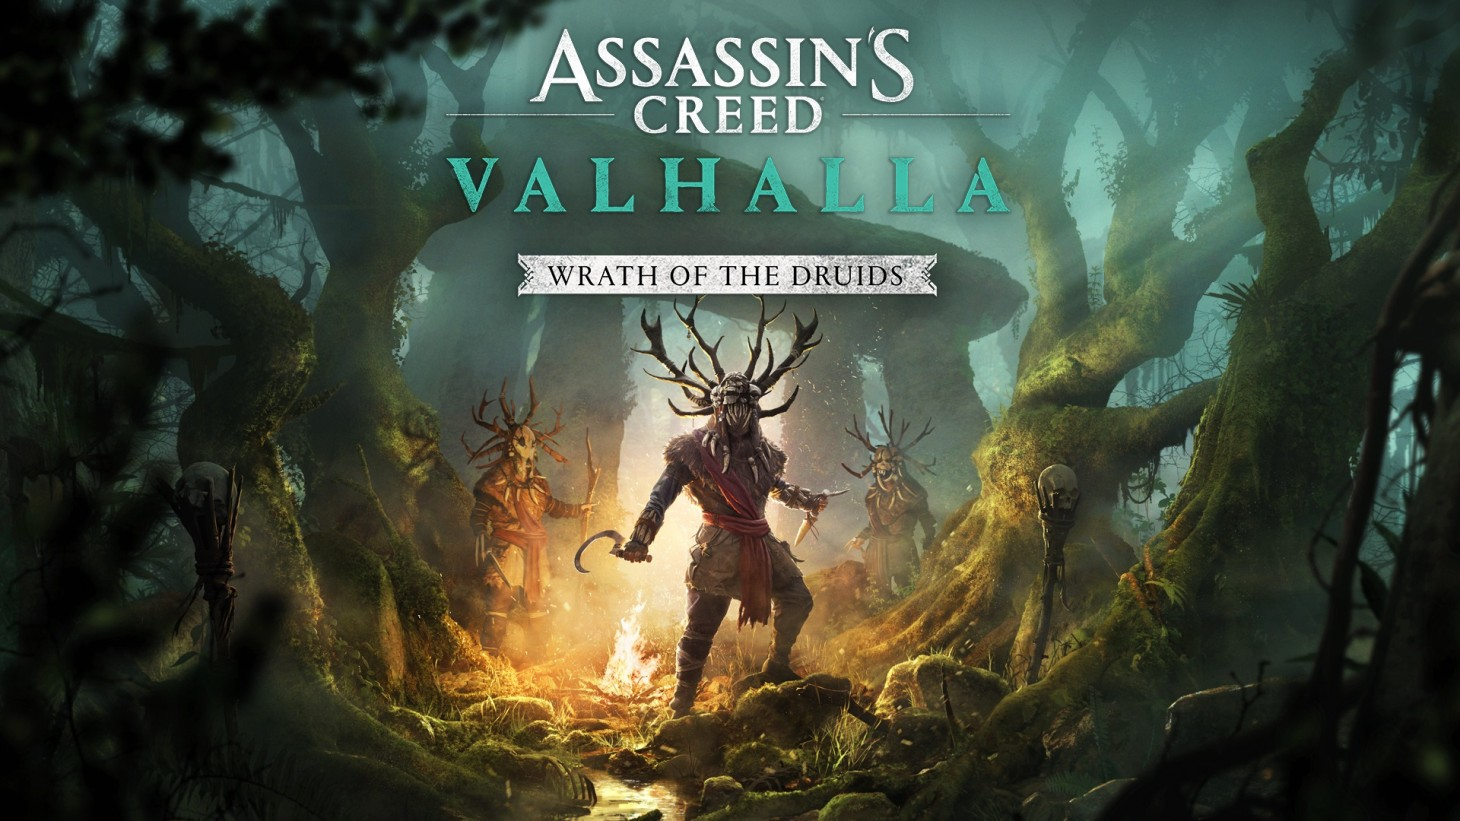 Walkthrough Assassin's Creed: Valhalla - Wrath of the Druids - Game Guide